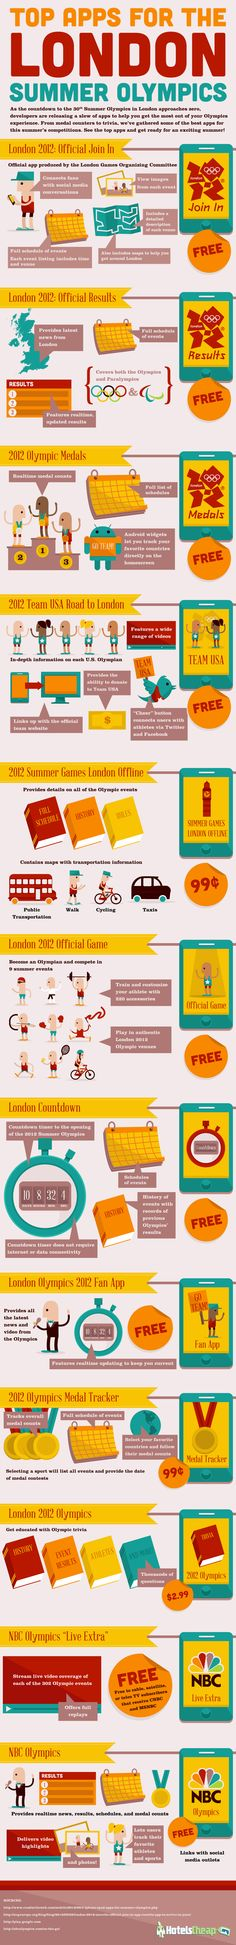 Top Apps For the London 2012 Olympics #iphone #olympics #RT http://marketmobile/appstore